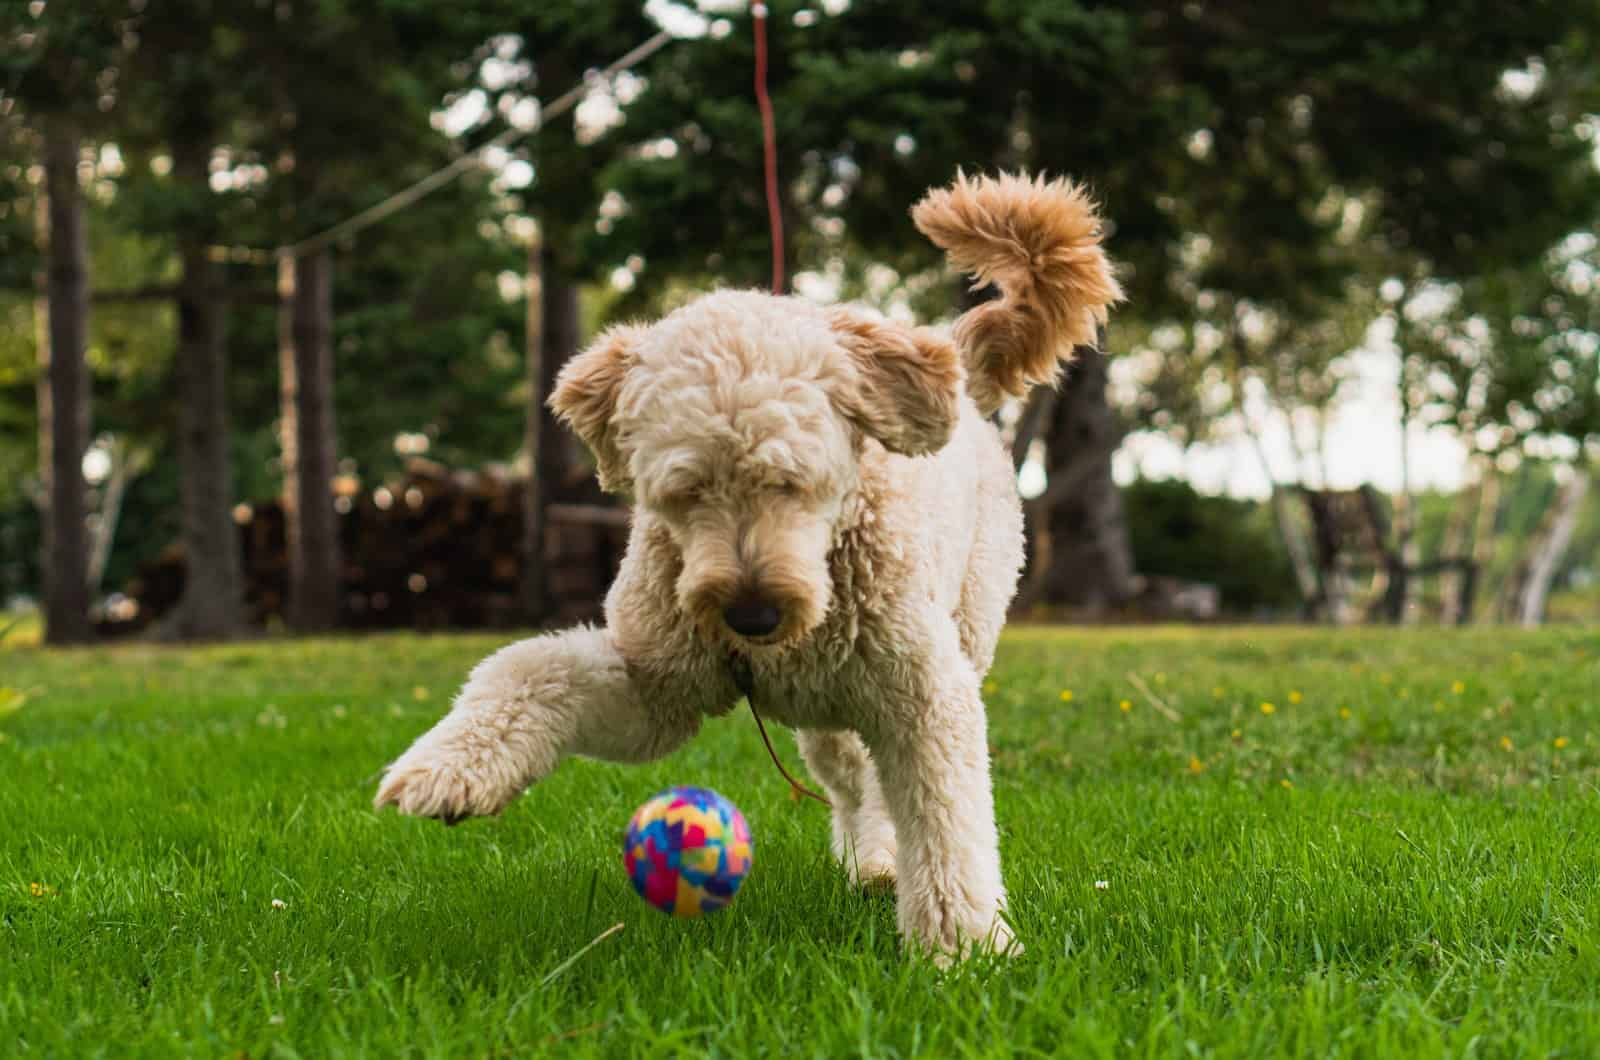 goldendoodle playing in grass